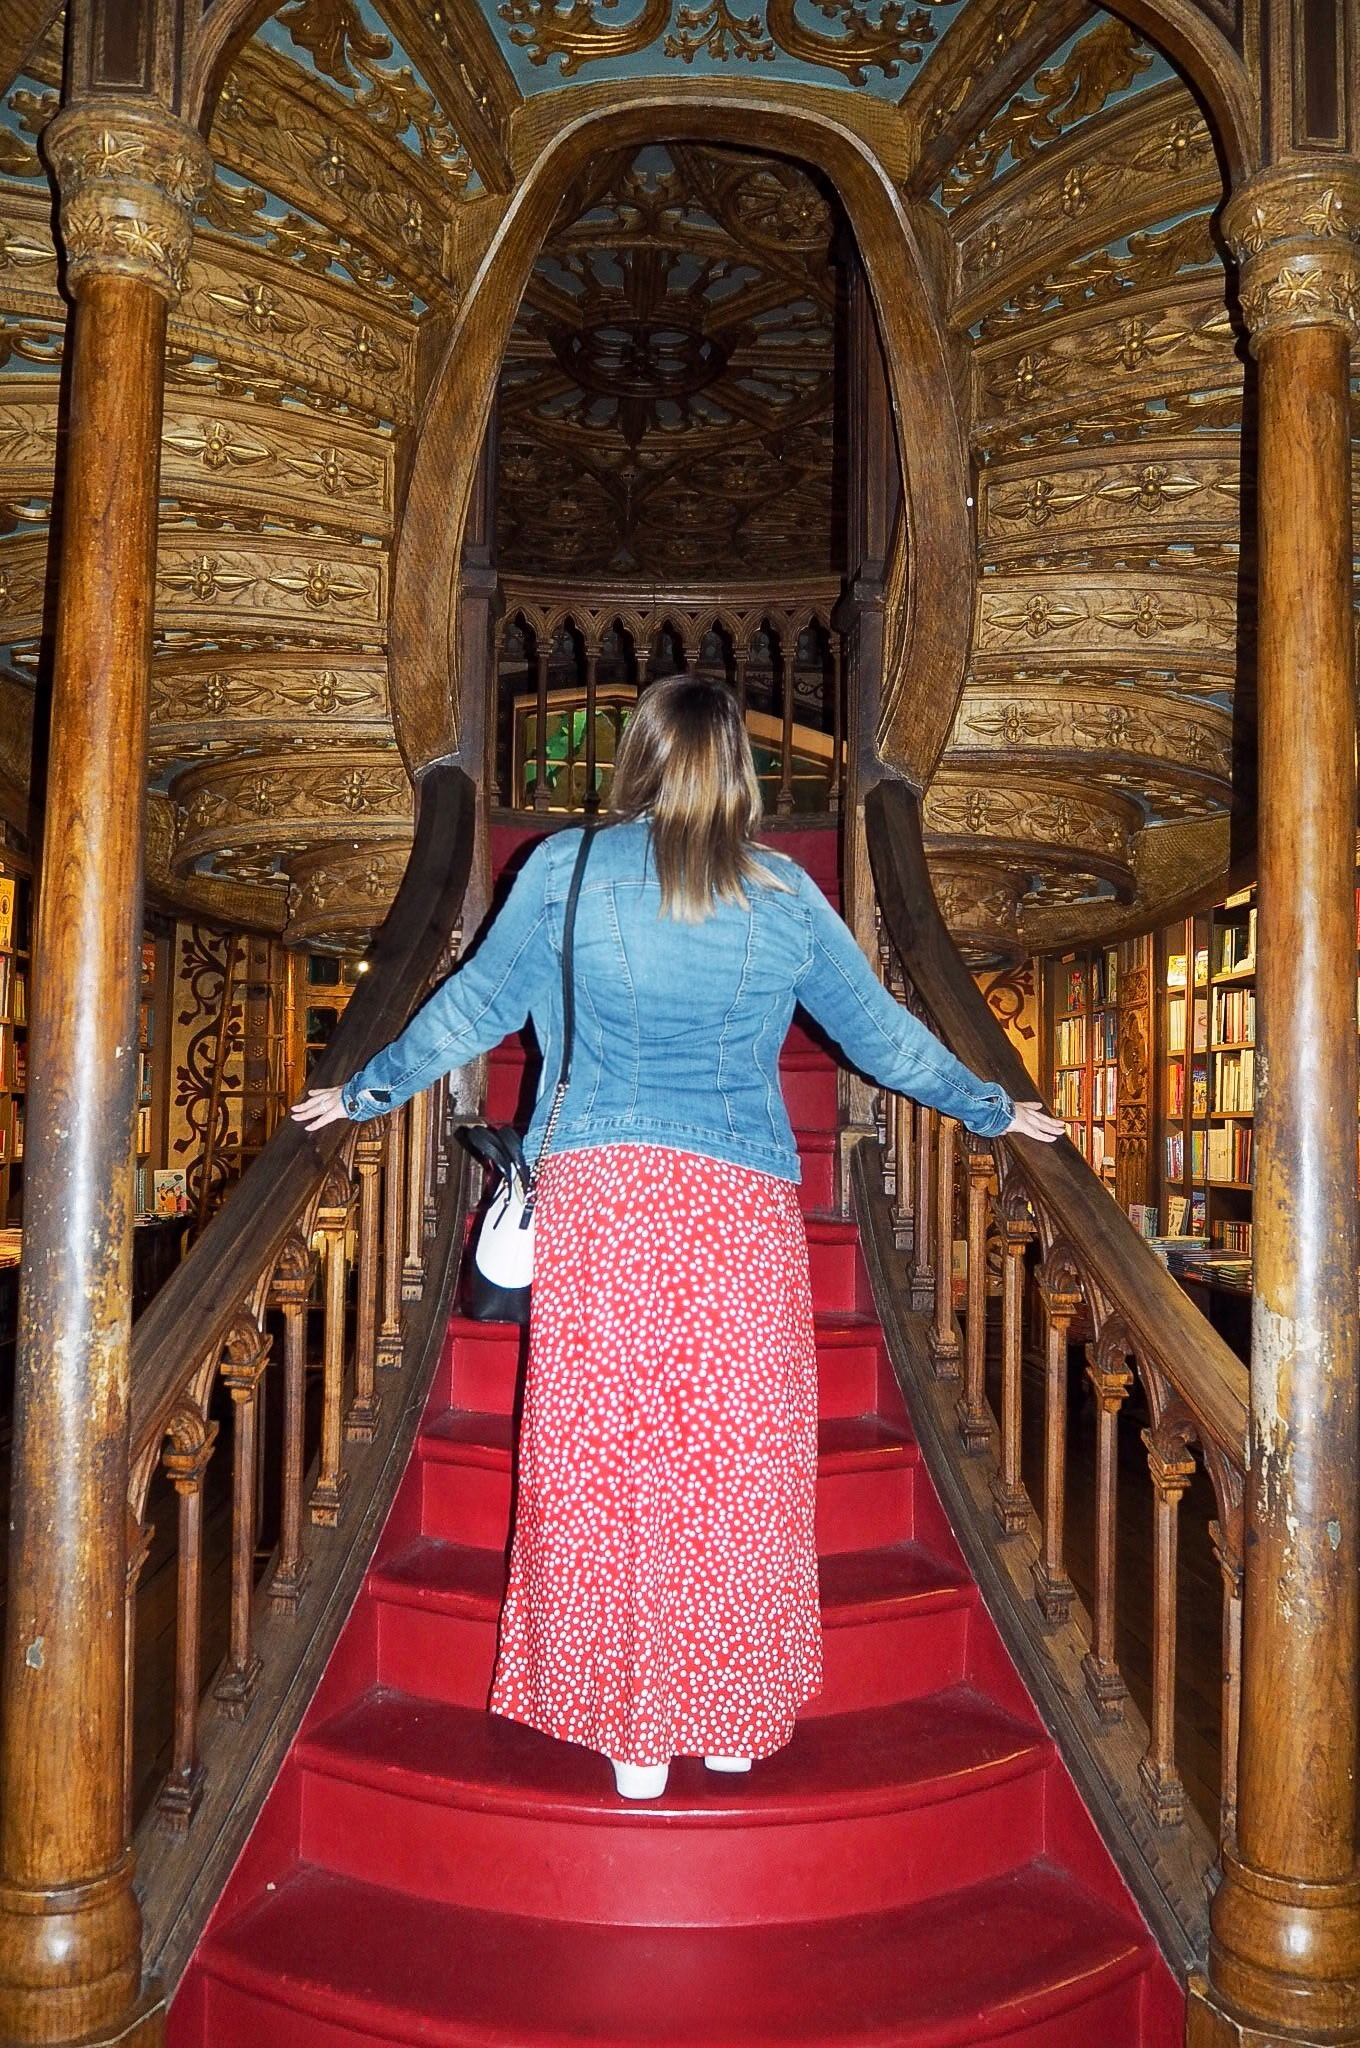 Looking for Harry Potter at Livraria Lello Library Porto